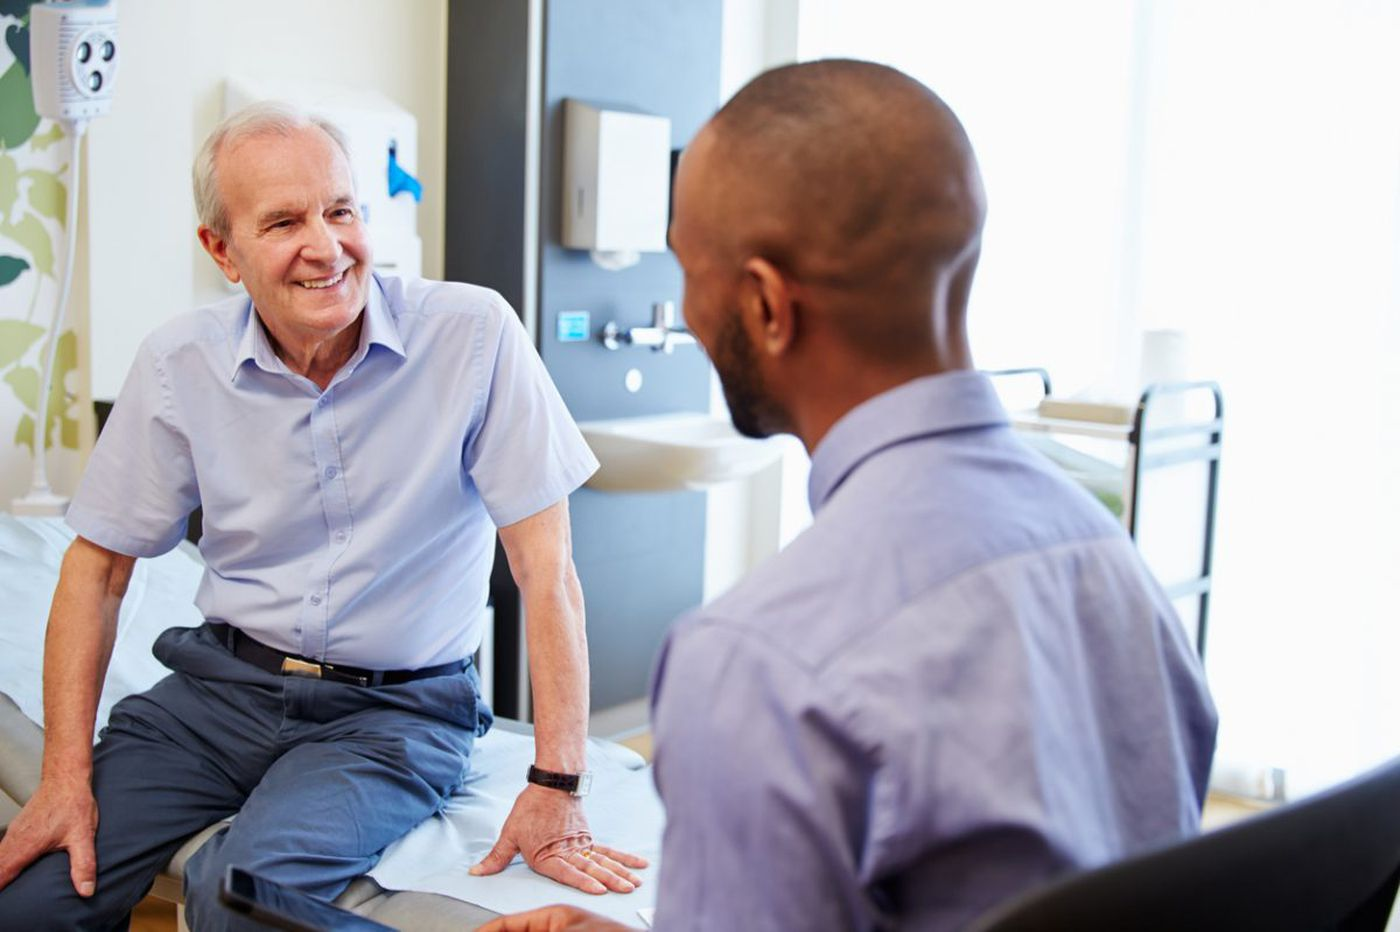 5 things that informed patients want their doctors to know